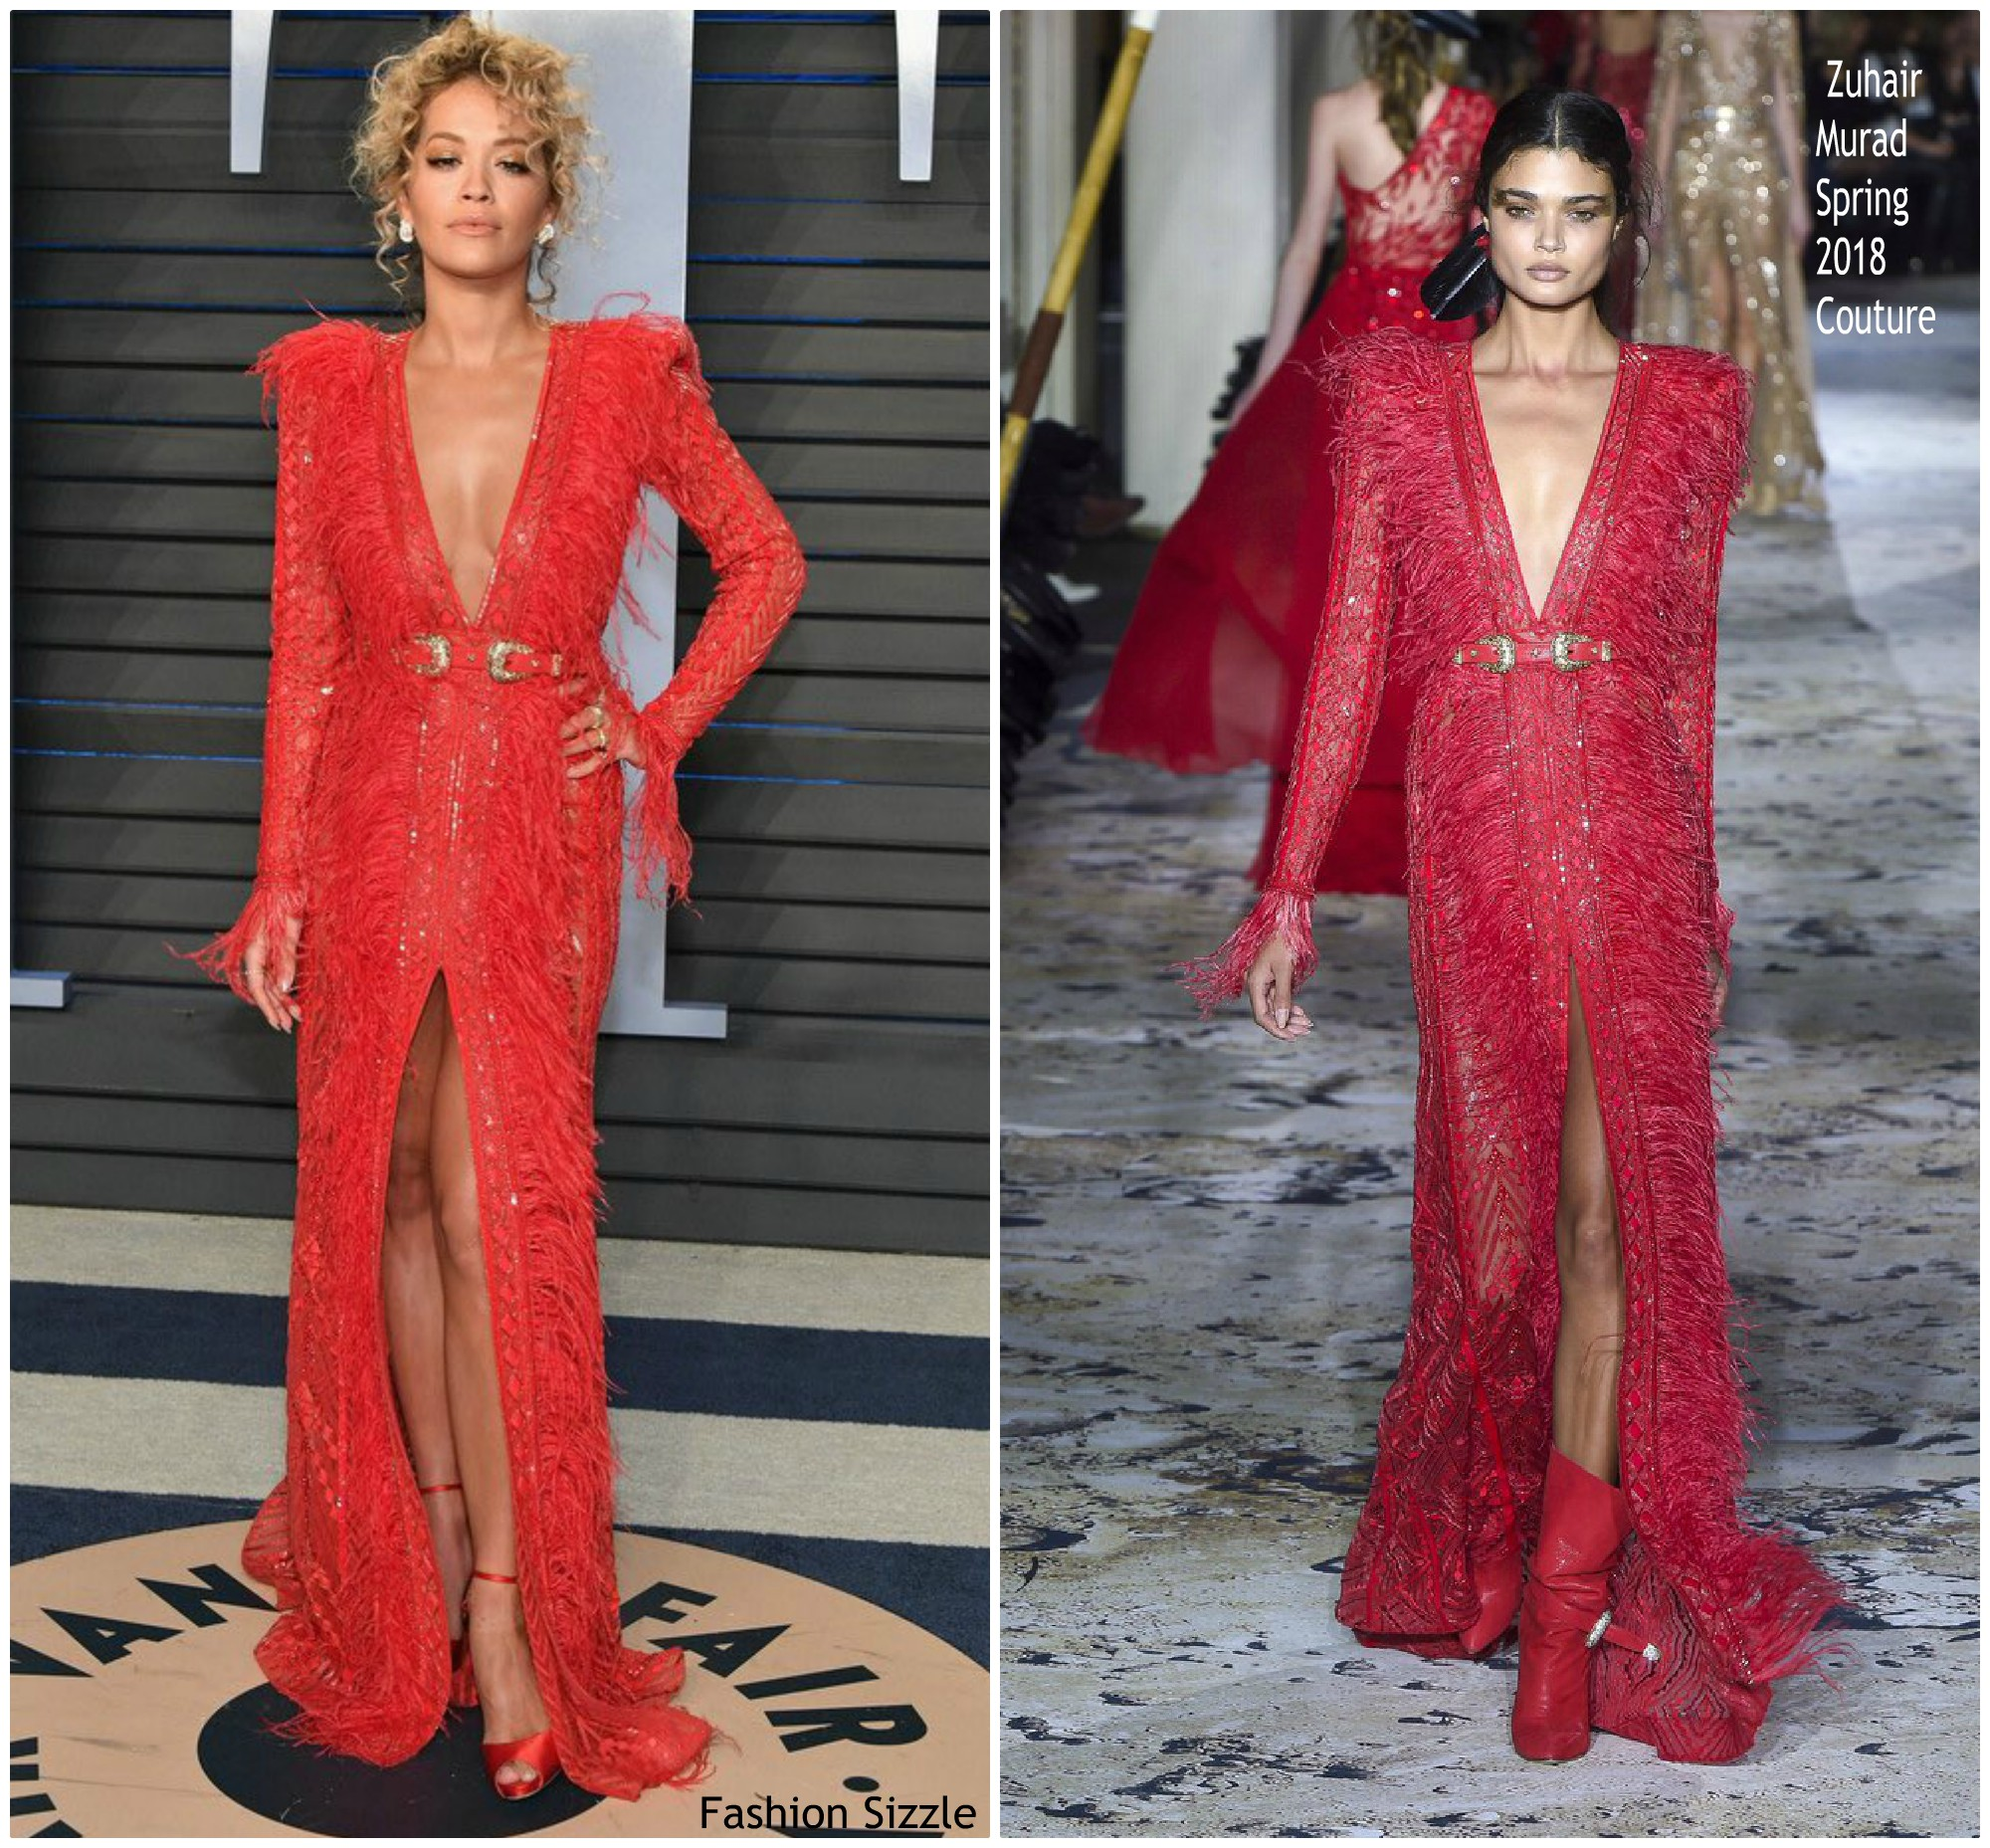 rita-ora-in-zuhair-murad-2018-vanity-fair-oscar-party